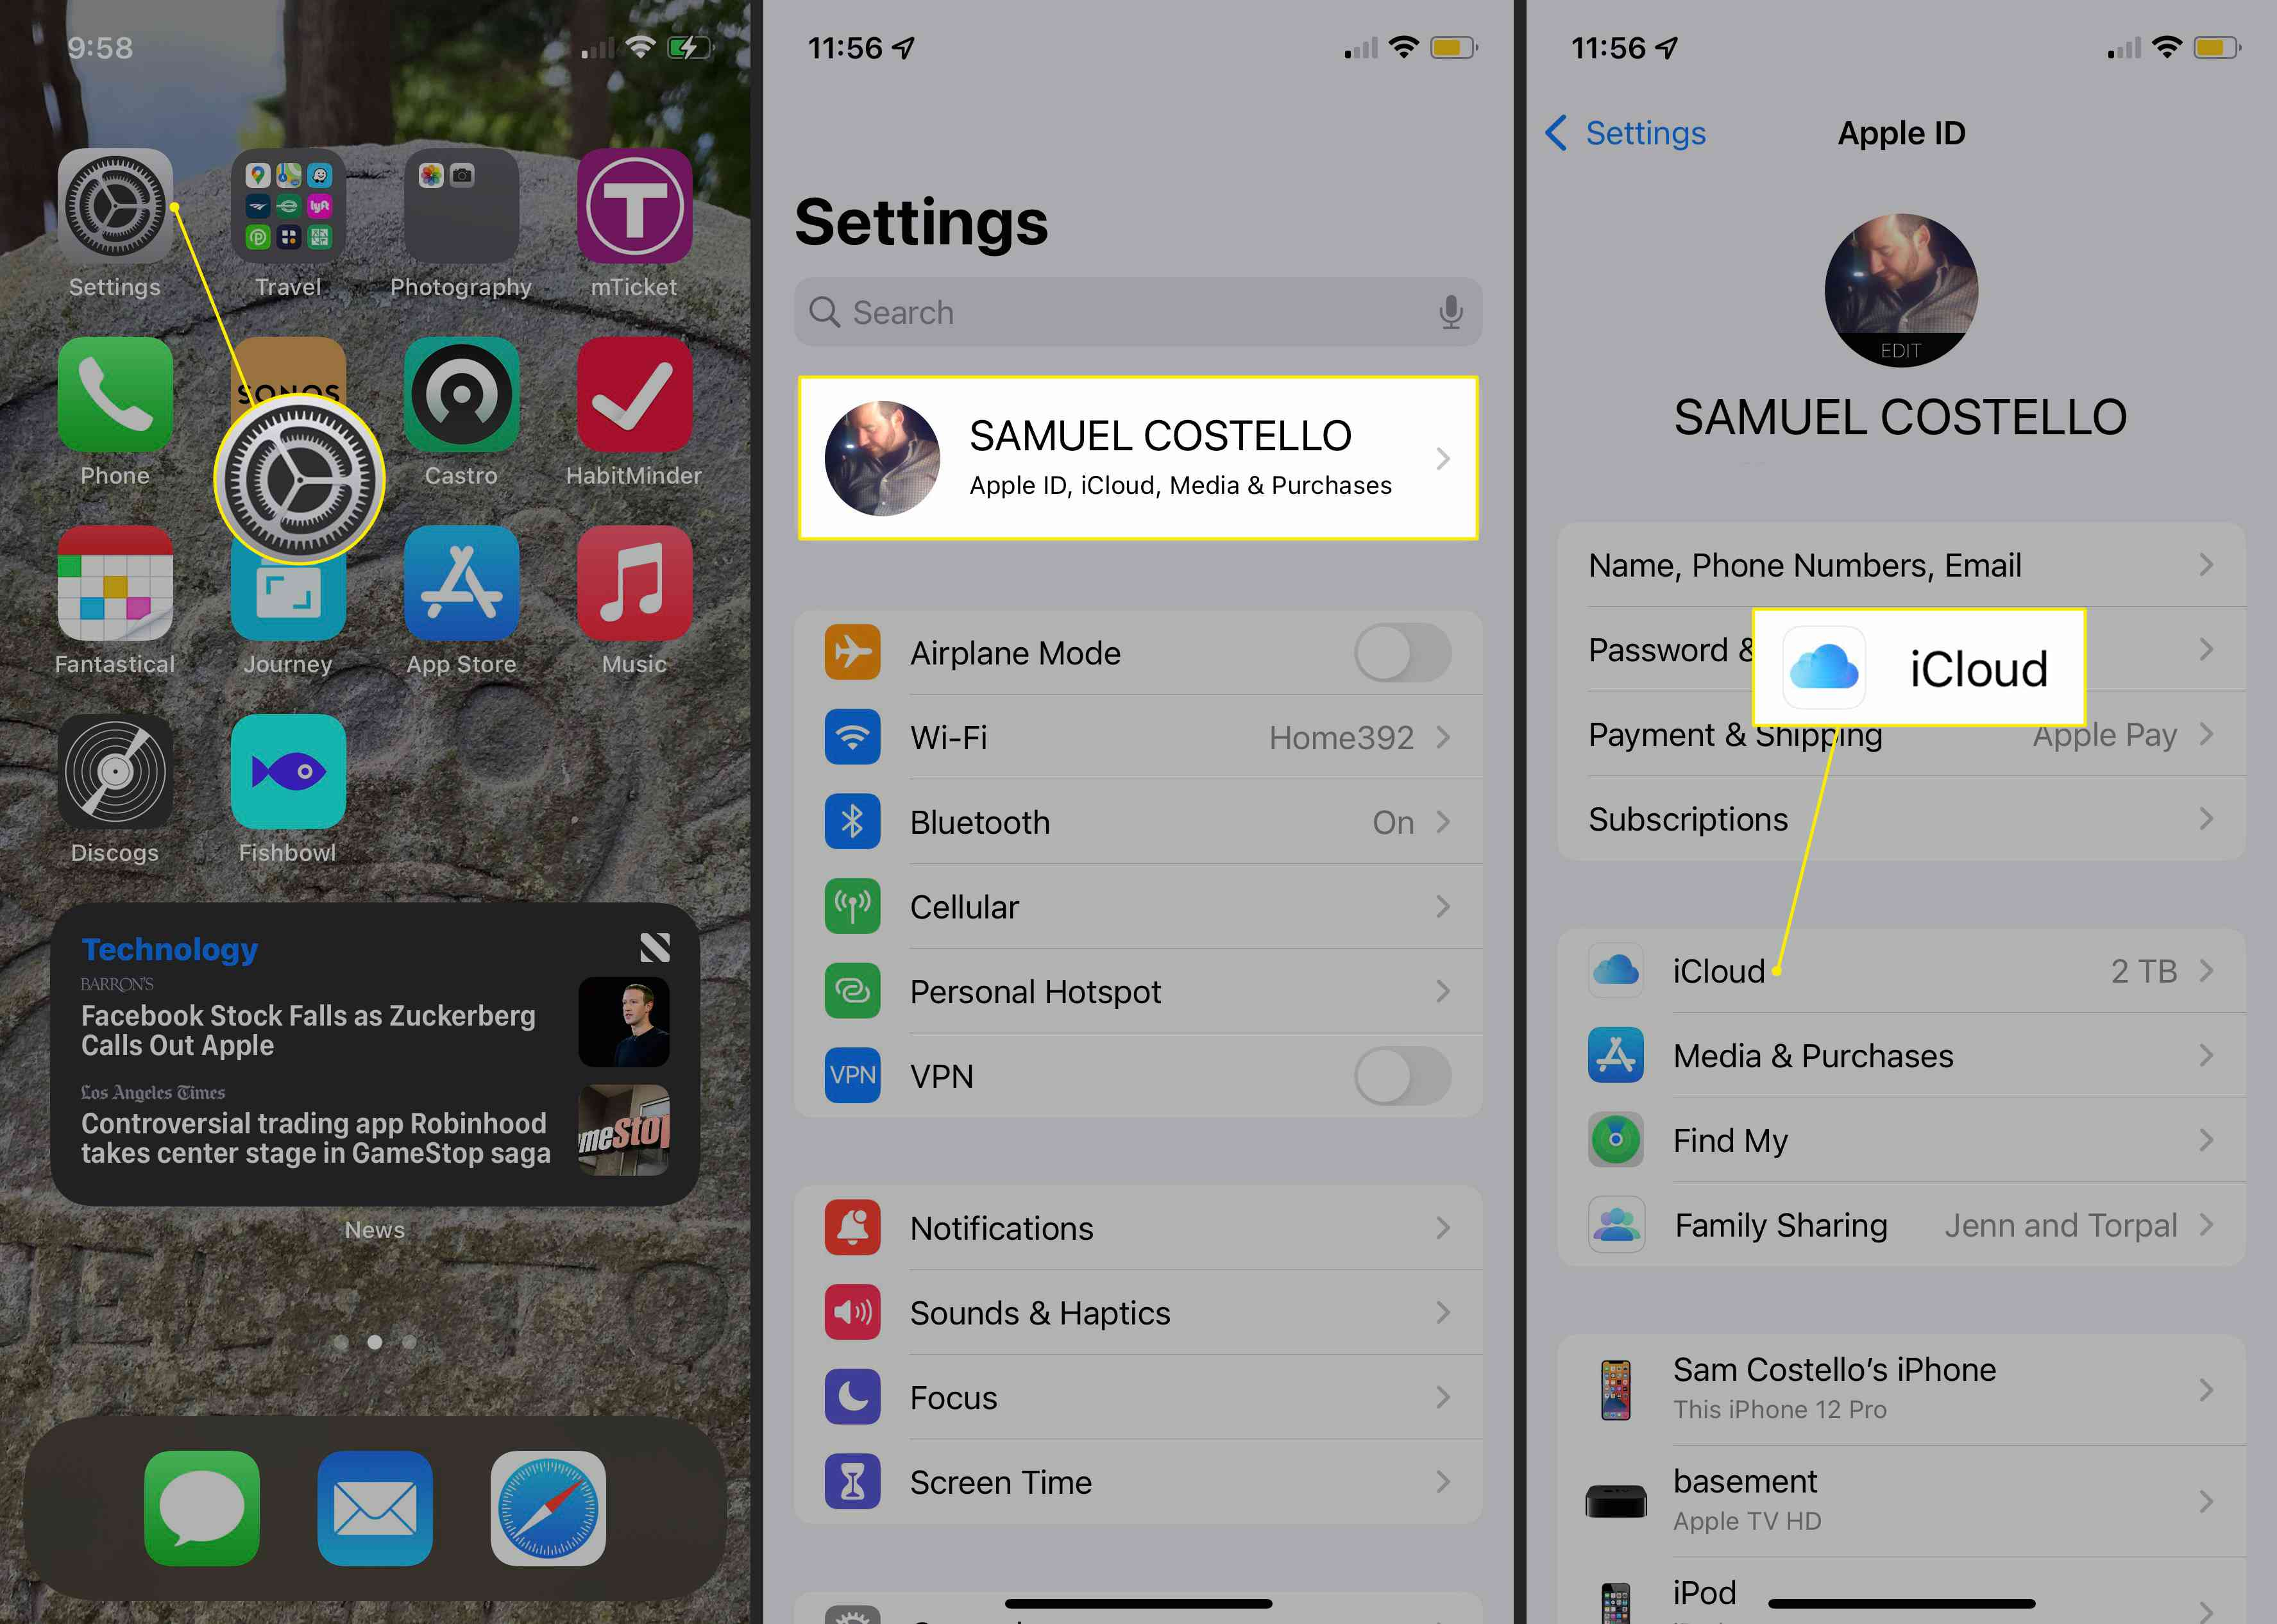 Settings gear, User name, and iCloud highlighted on iOS